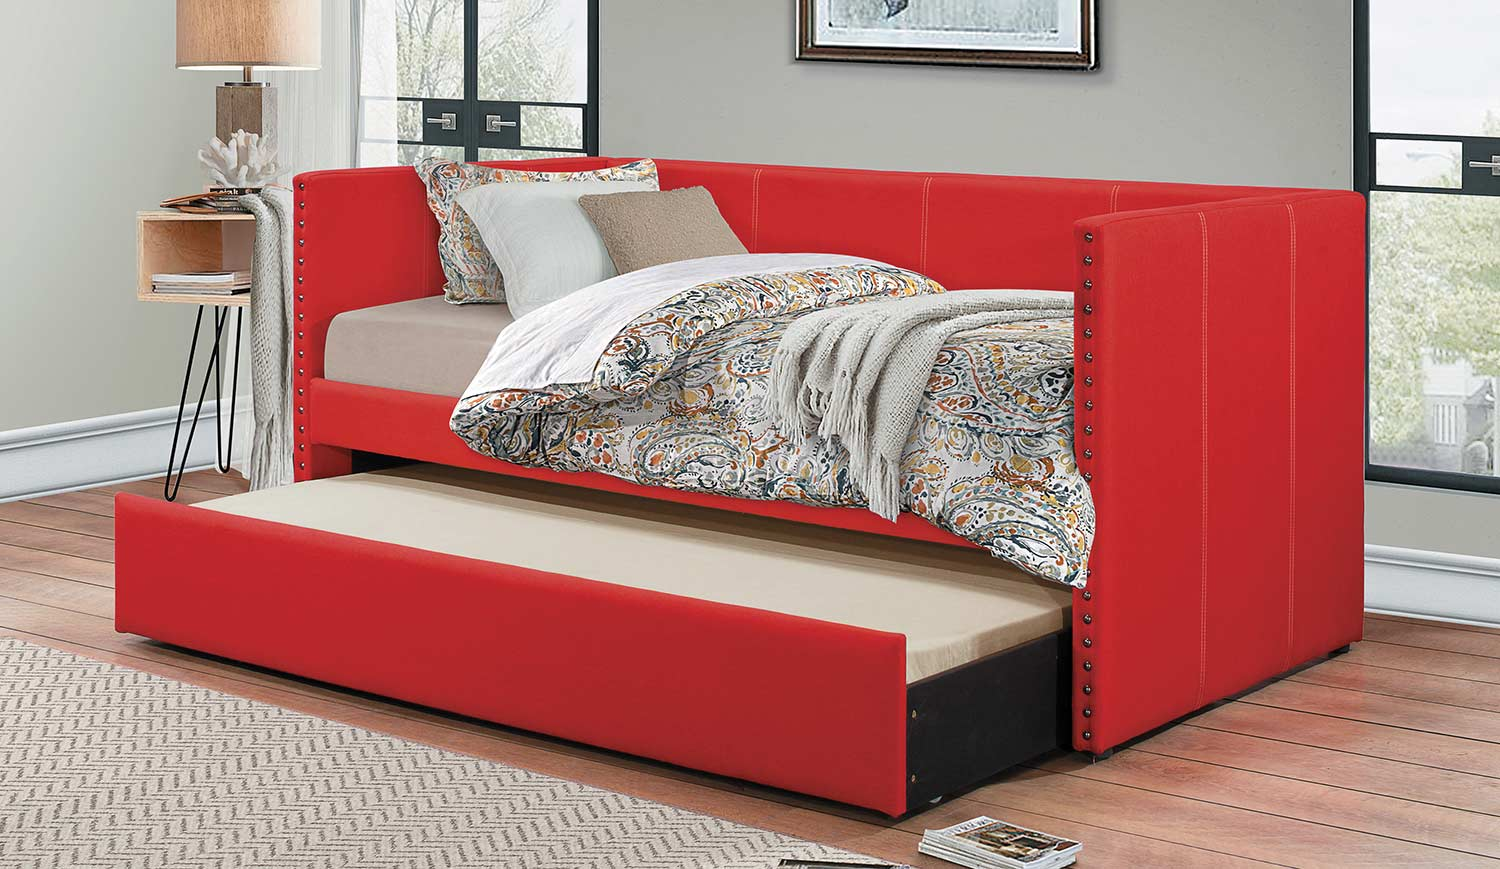 Homelegance Therese Daybed with Trundle - Red